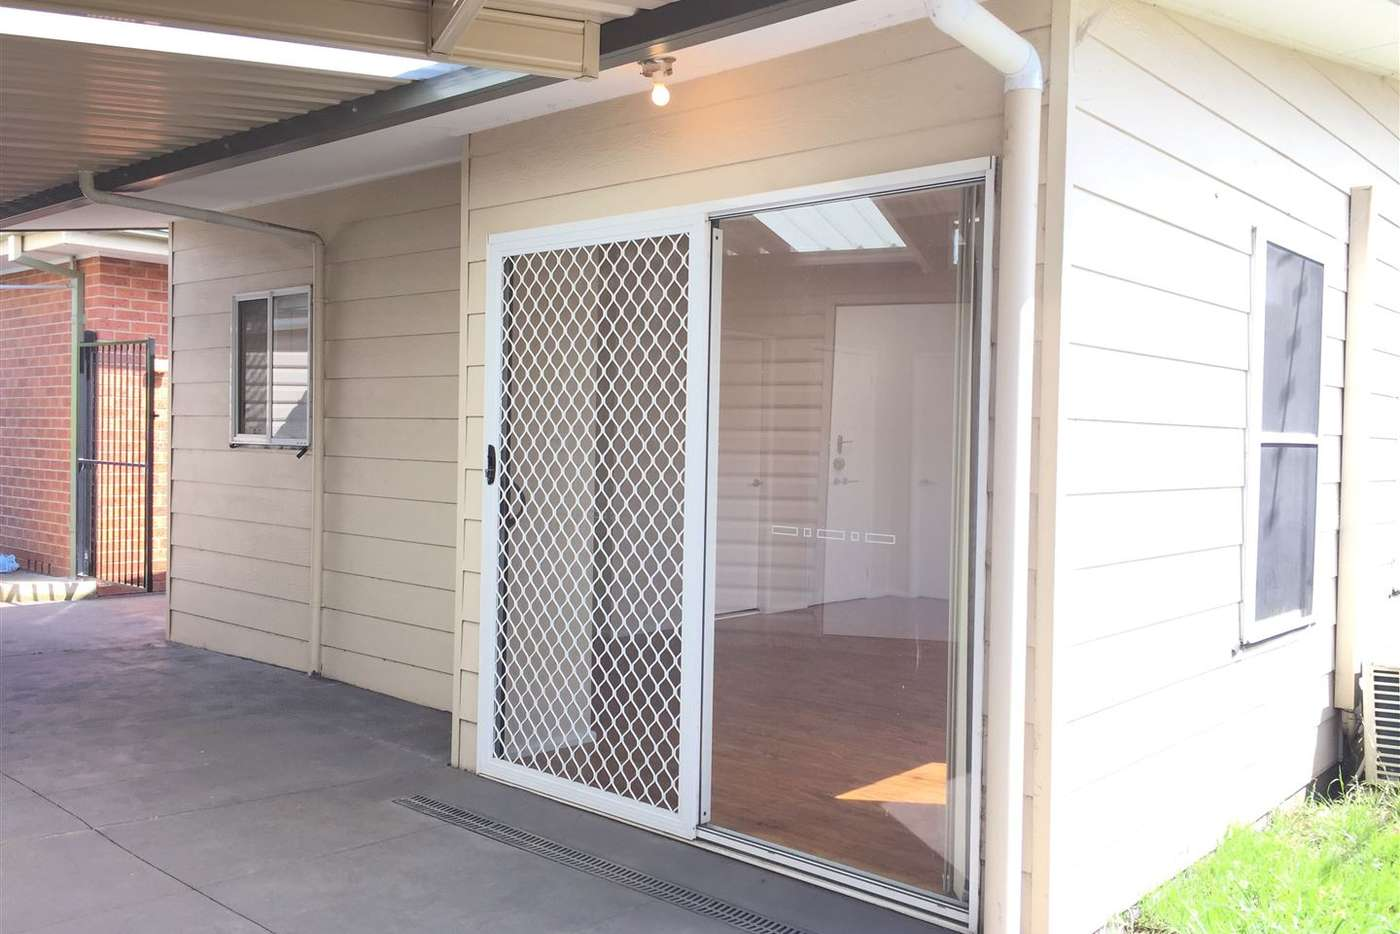 Main view of Homely house listing, 4a Hinton Glen, North St Marys NSW 2760